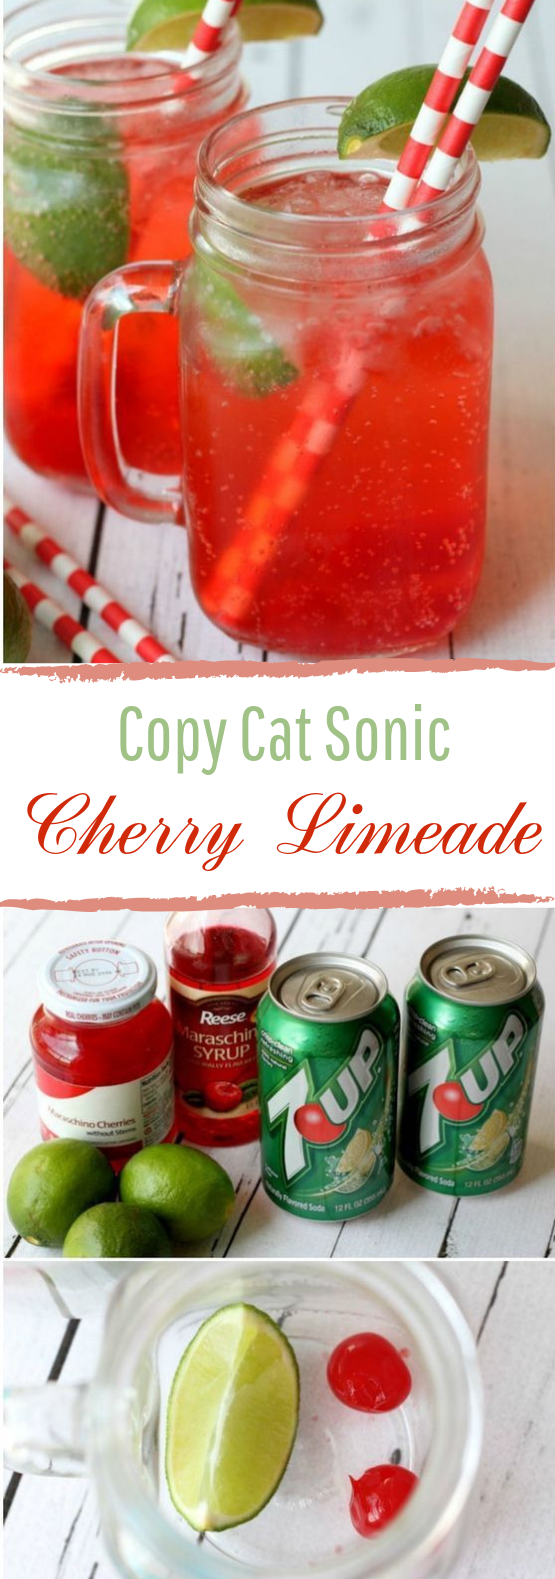 Copycat Sonic Cherry Limeade #summer #drinks